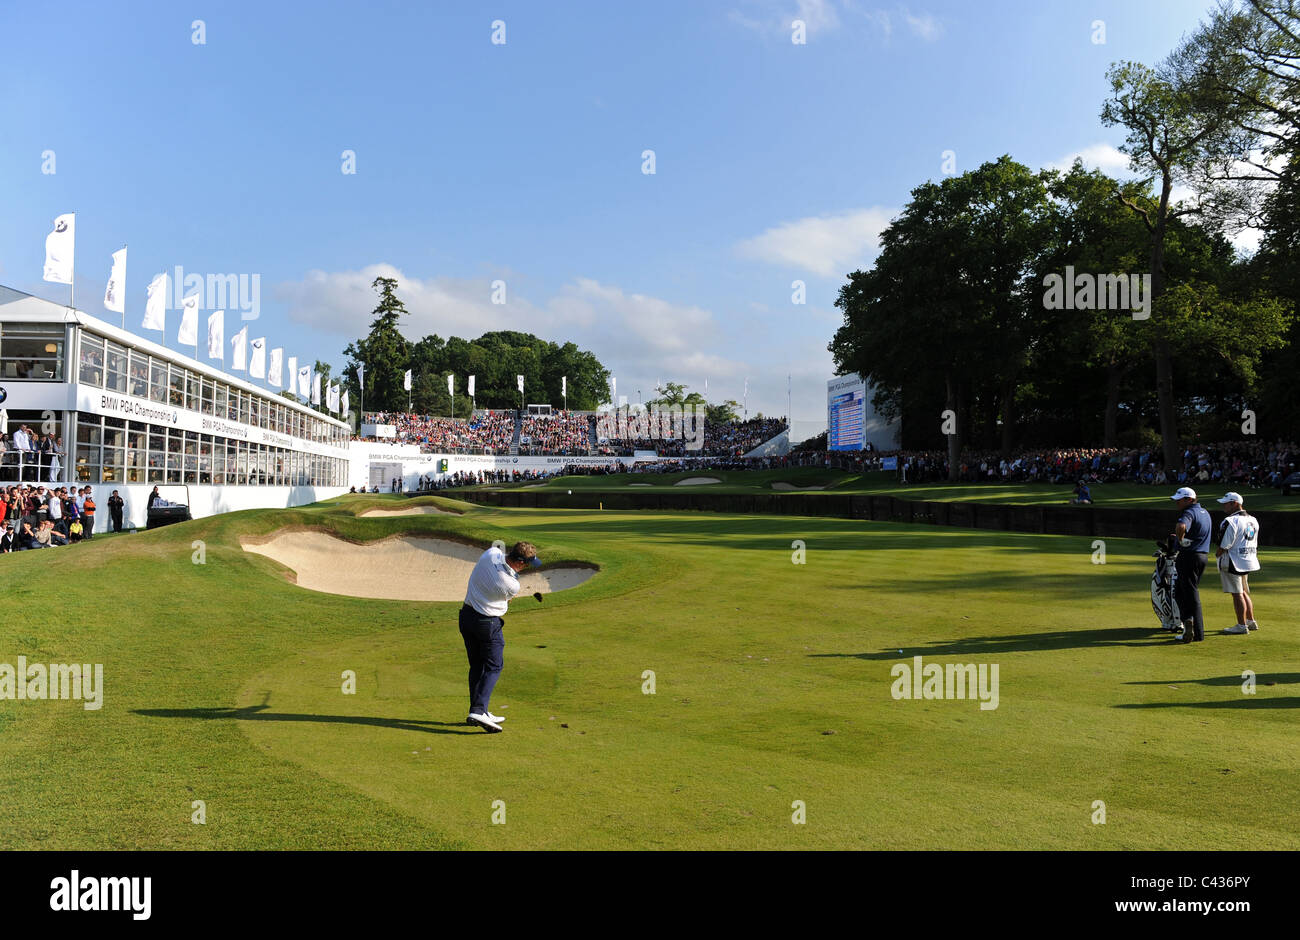 Professional Golfer Luke Donald plays an approach shot on the 18th hole at Wentworth - Stock Image